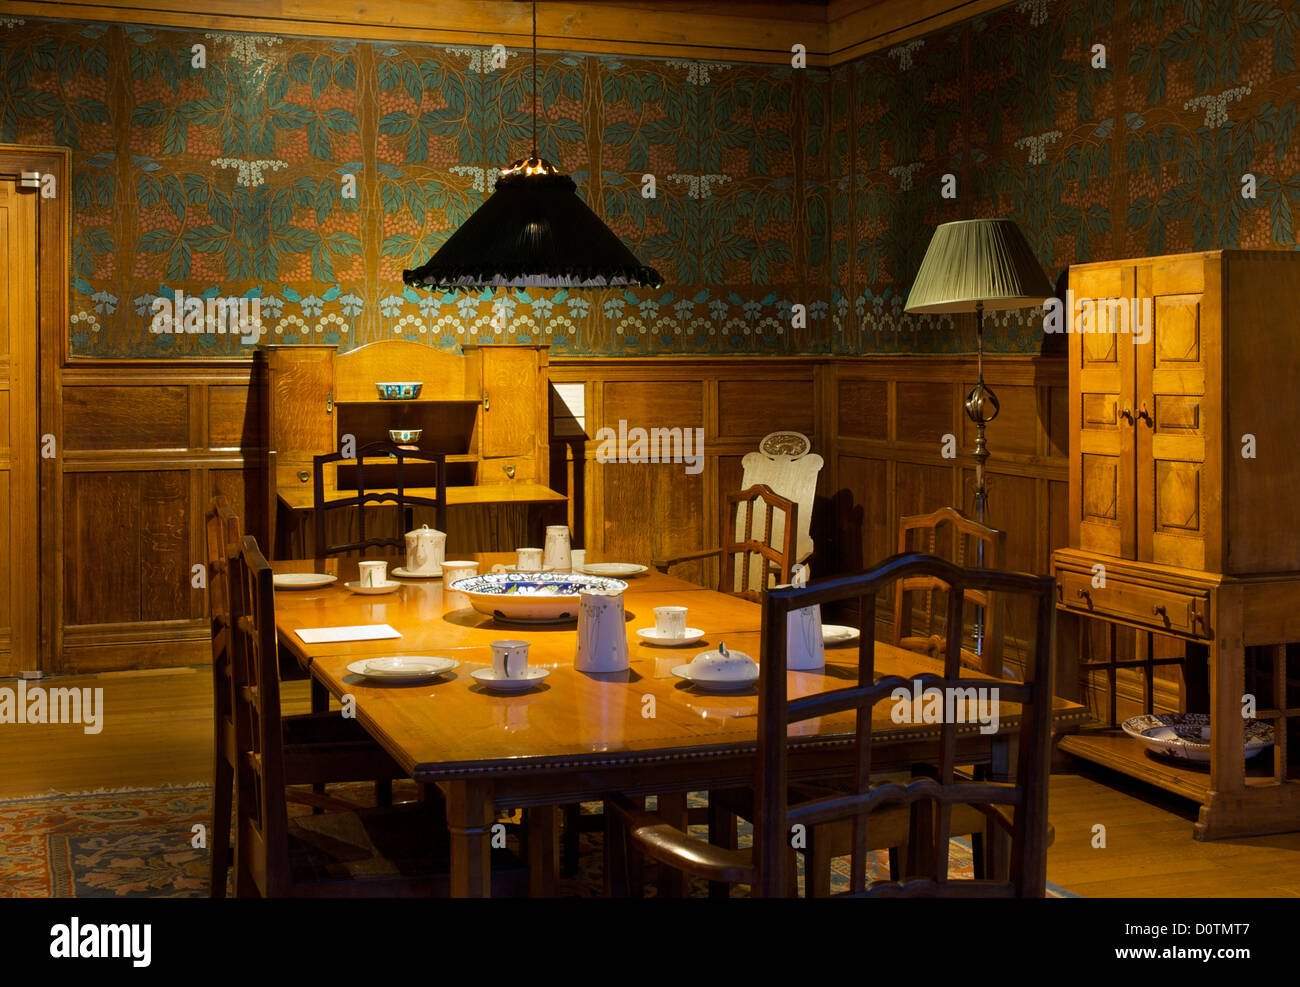 Dining Room In Blackwell Arts And Crafts House Overlooking Lake Windermere Near Bowness Cumbria England UK